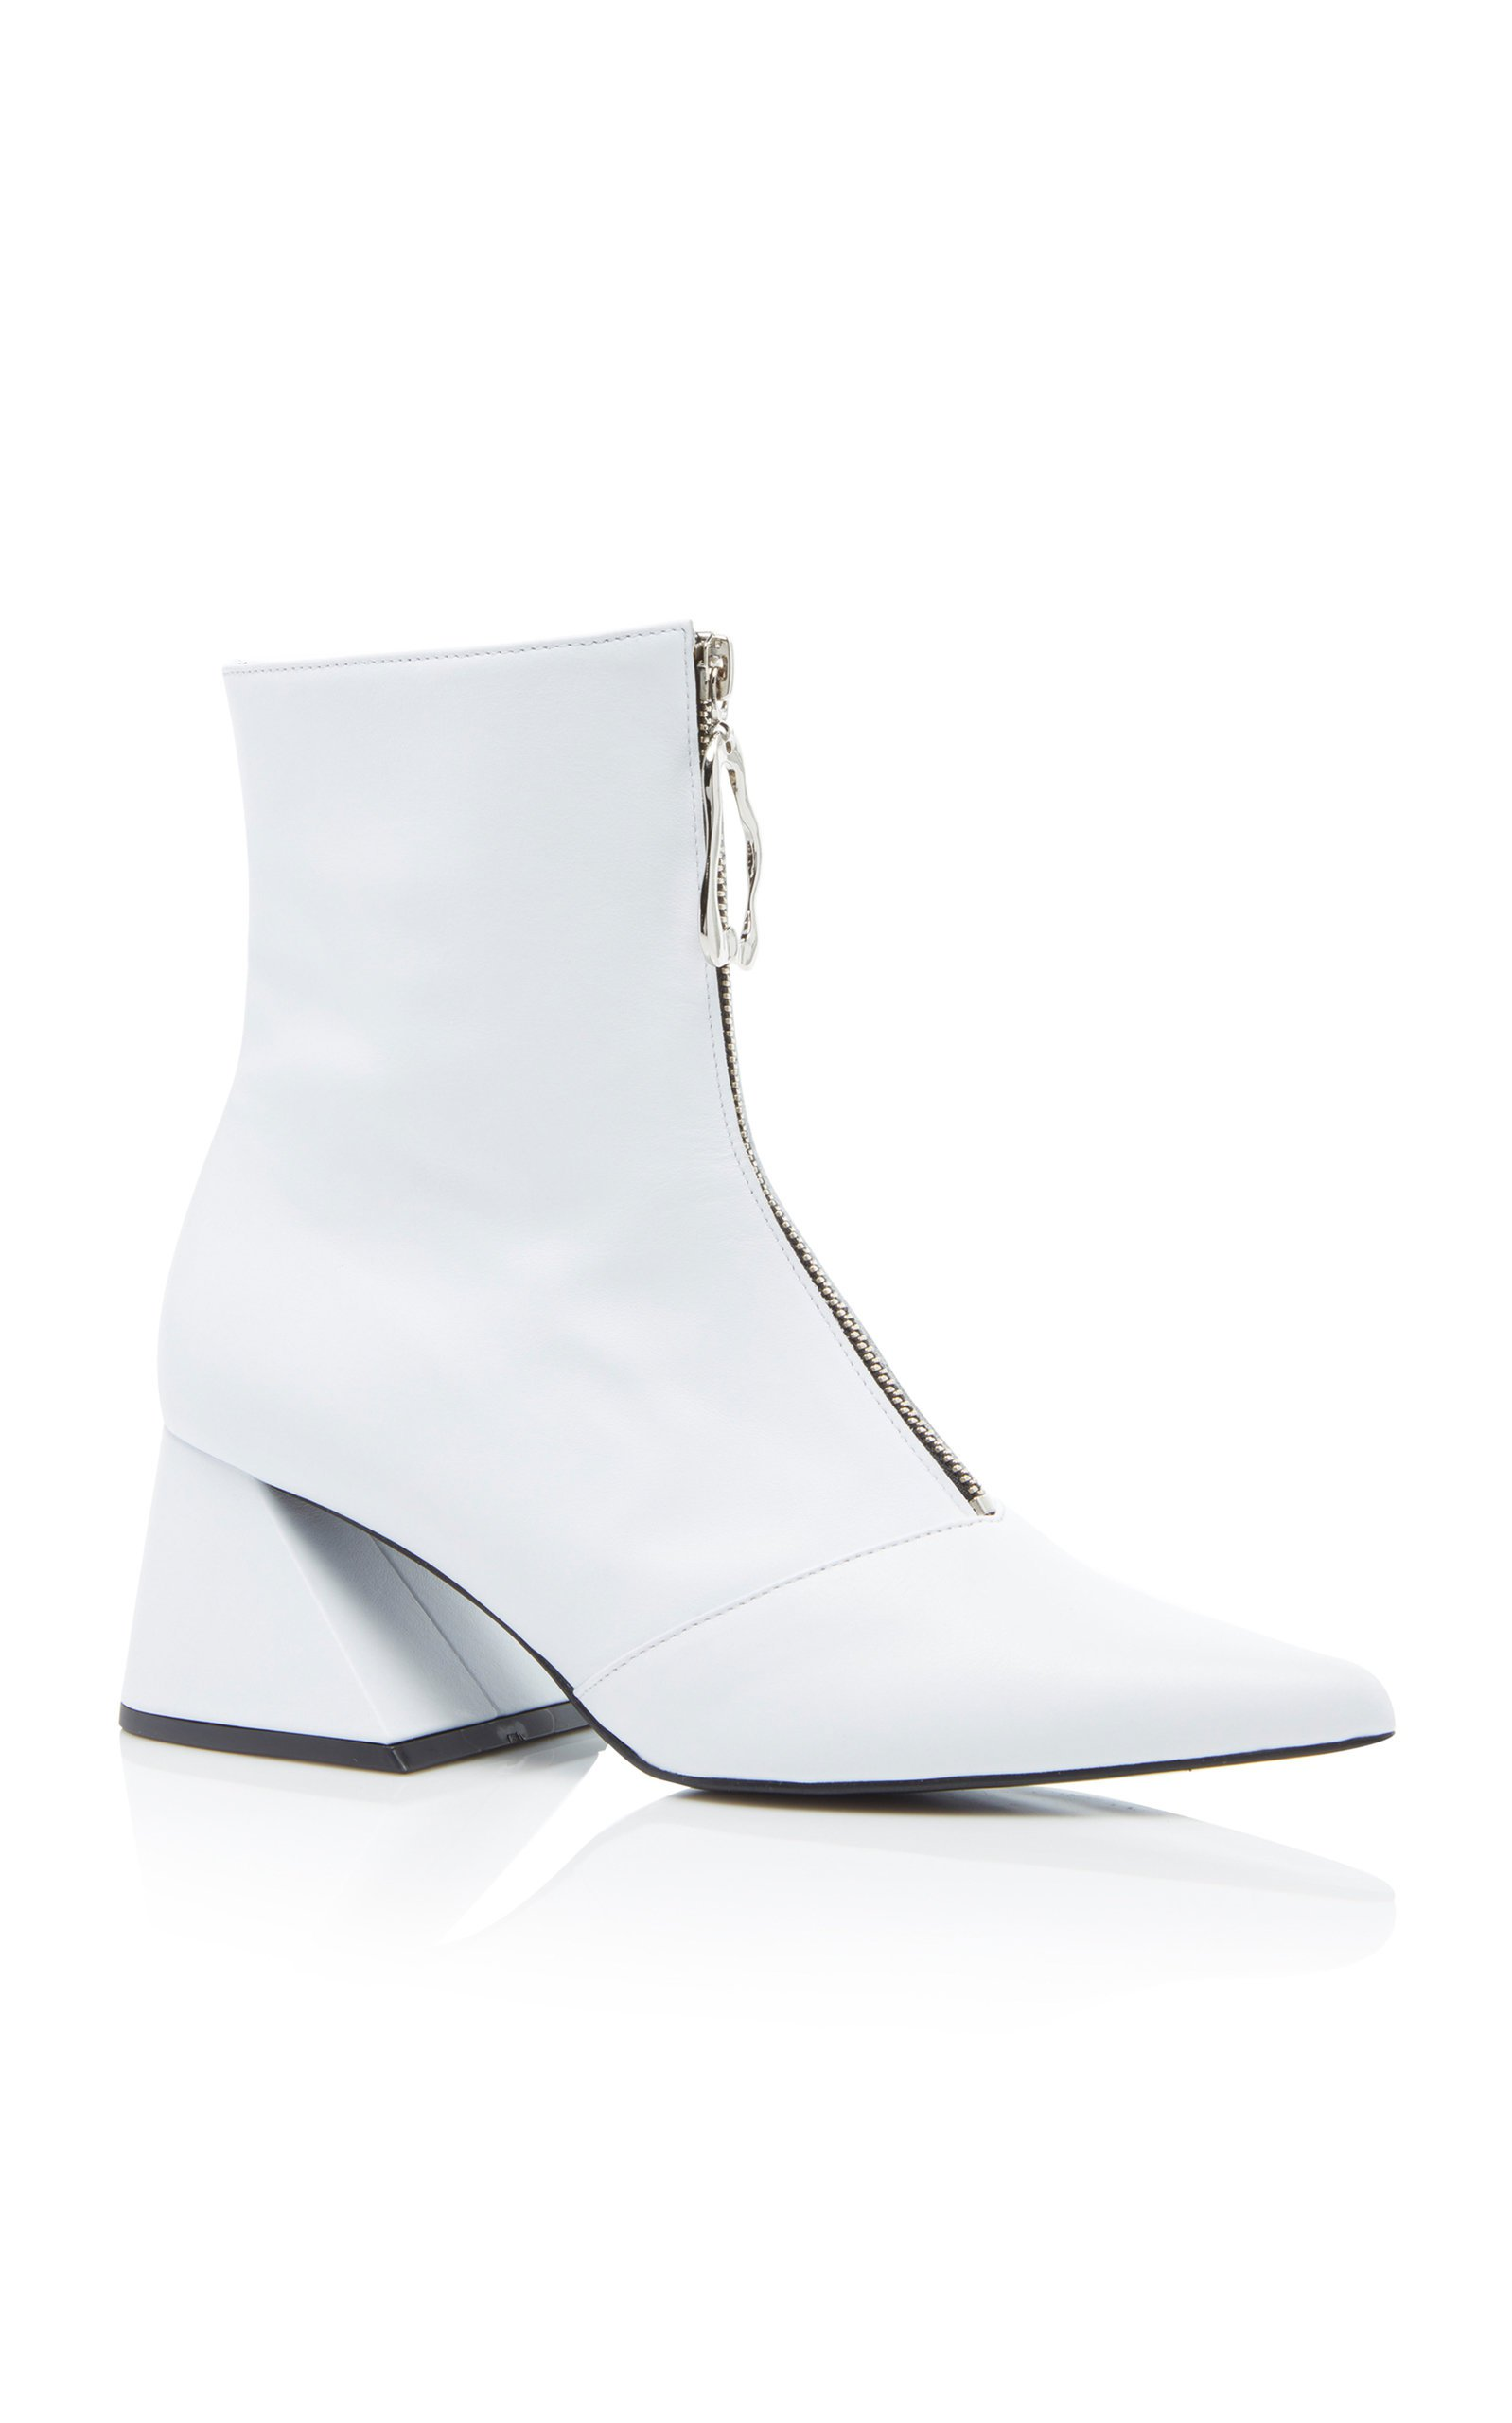 Patent-Leather Ankle Boots by Yuul Yie | Moda Operandi